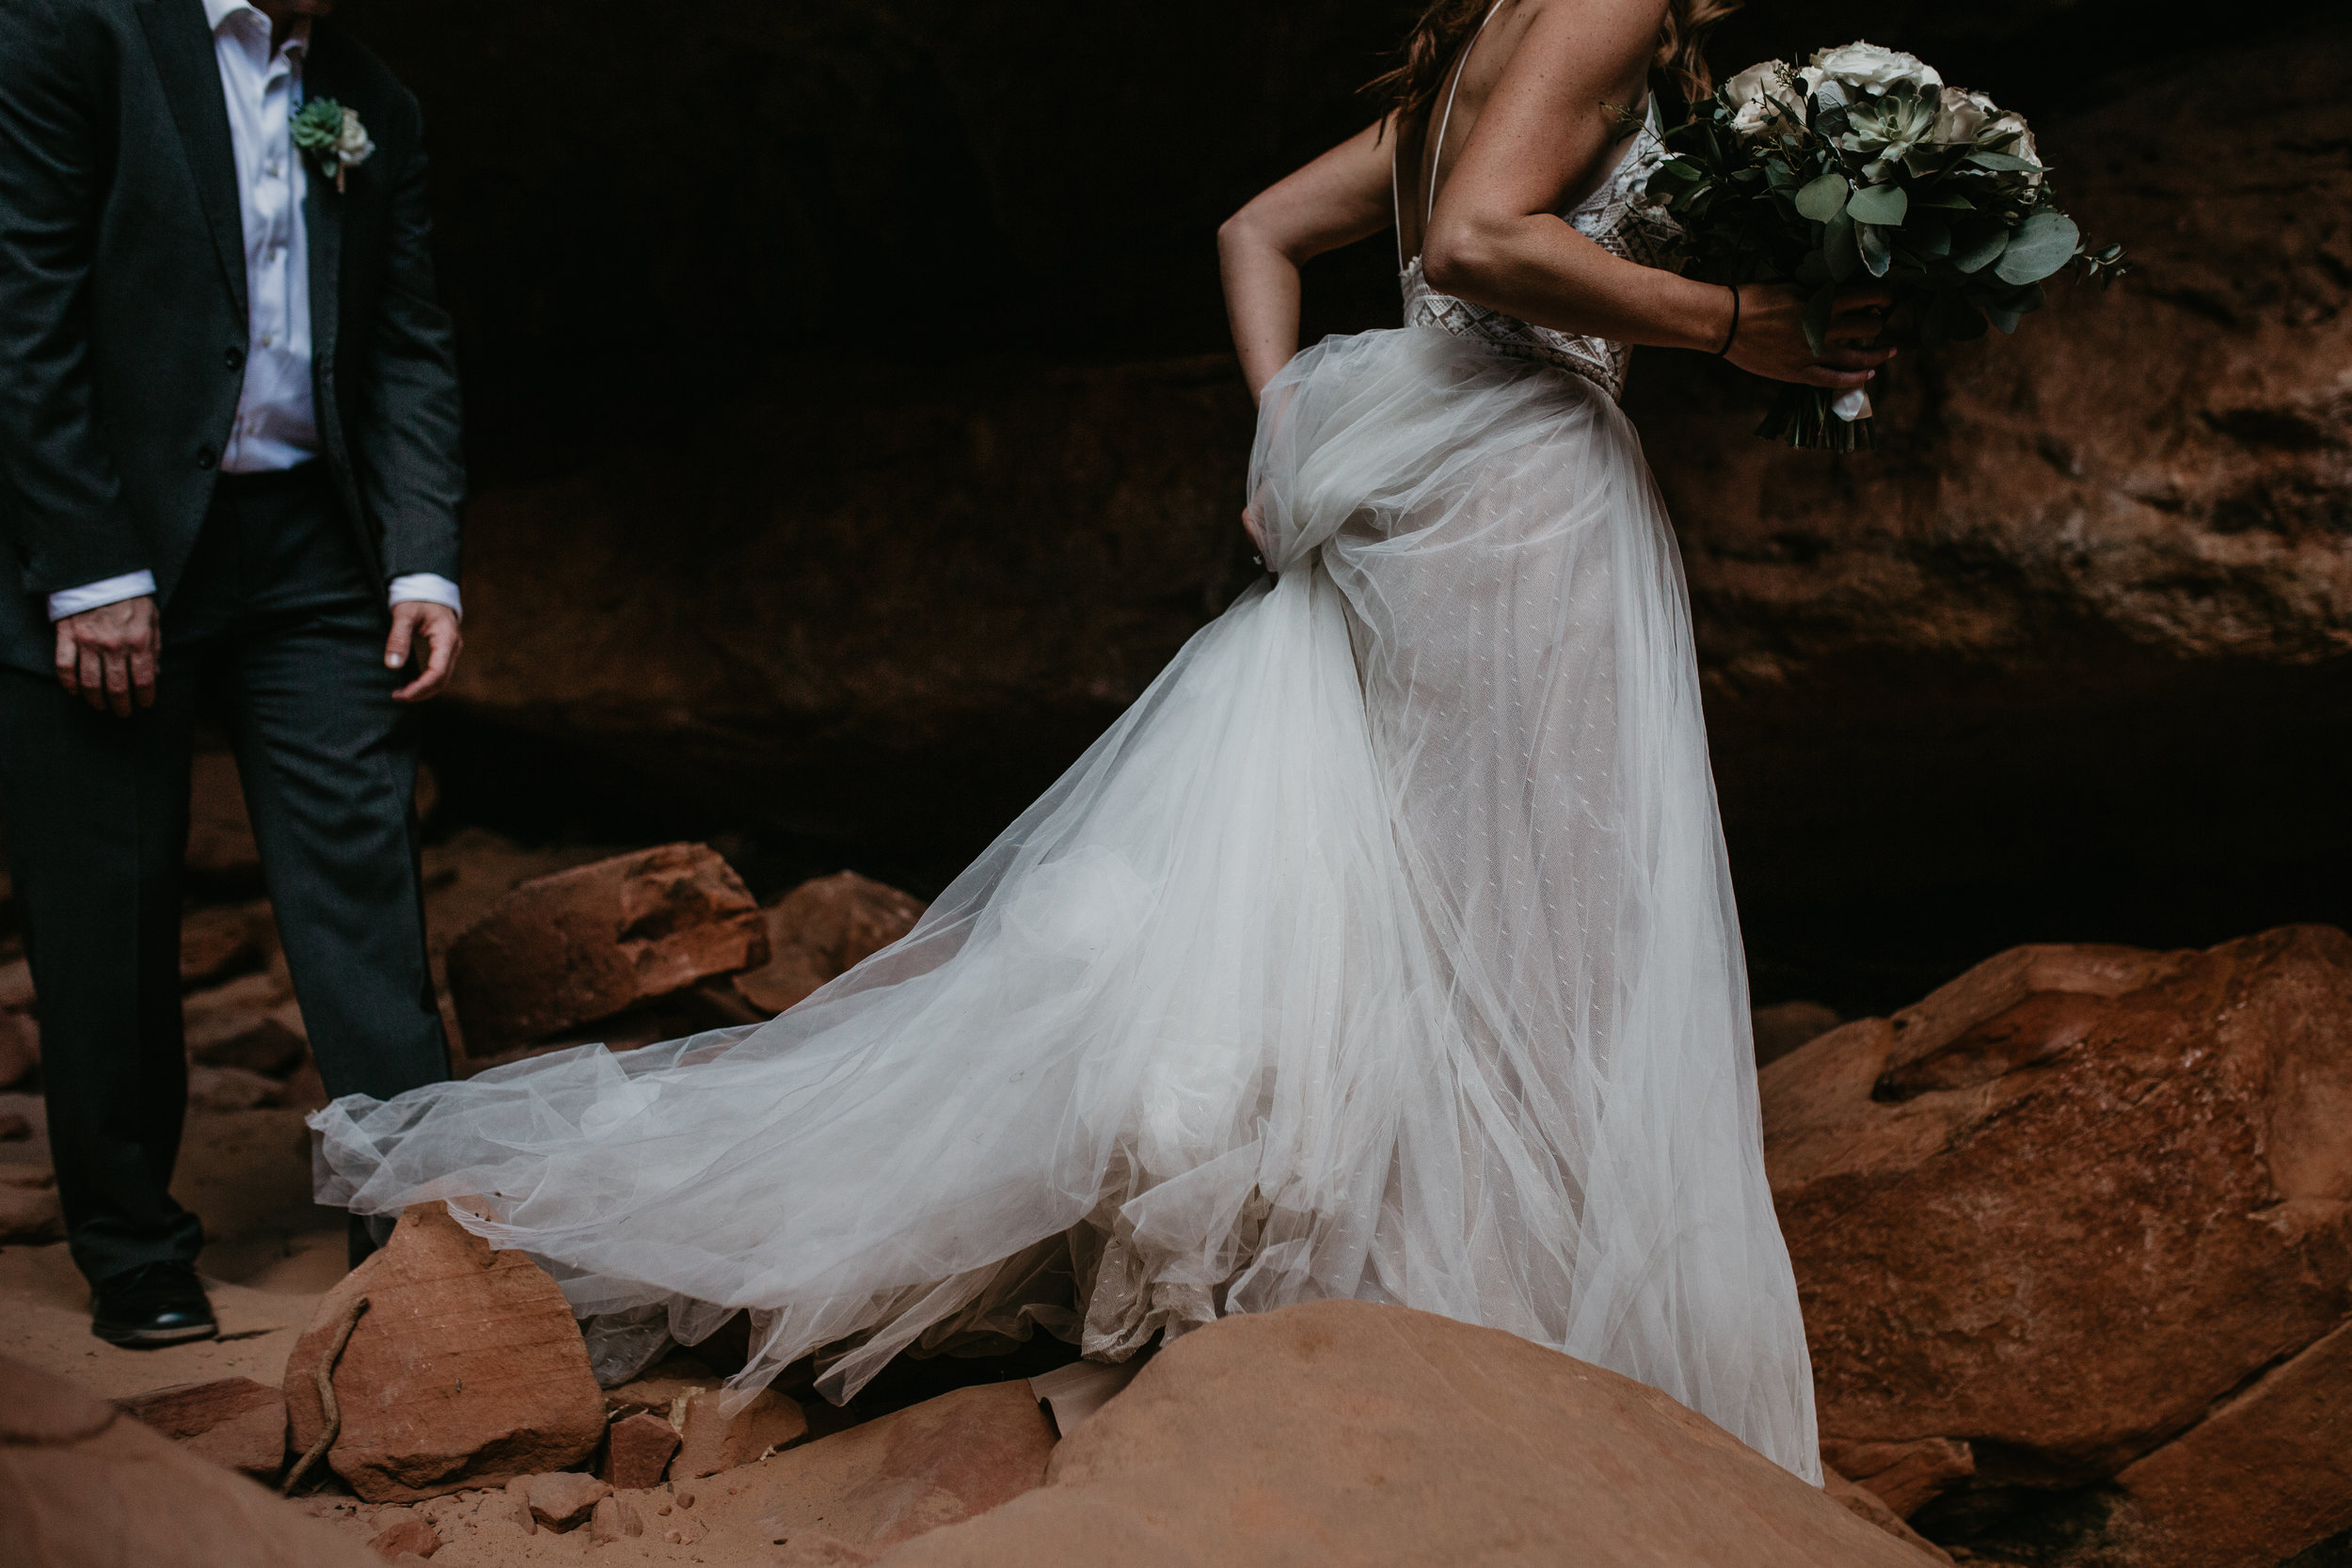 nicole-daacke-photography-zion-national-park-elopement-photographer-canyon-overlook-trail-elope-hiking-adventure-wedding-photos-fall-utah-red-rock-canyon-stgeorge-eloping-photographer-32.jpg